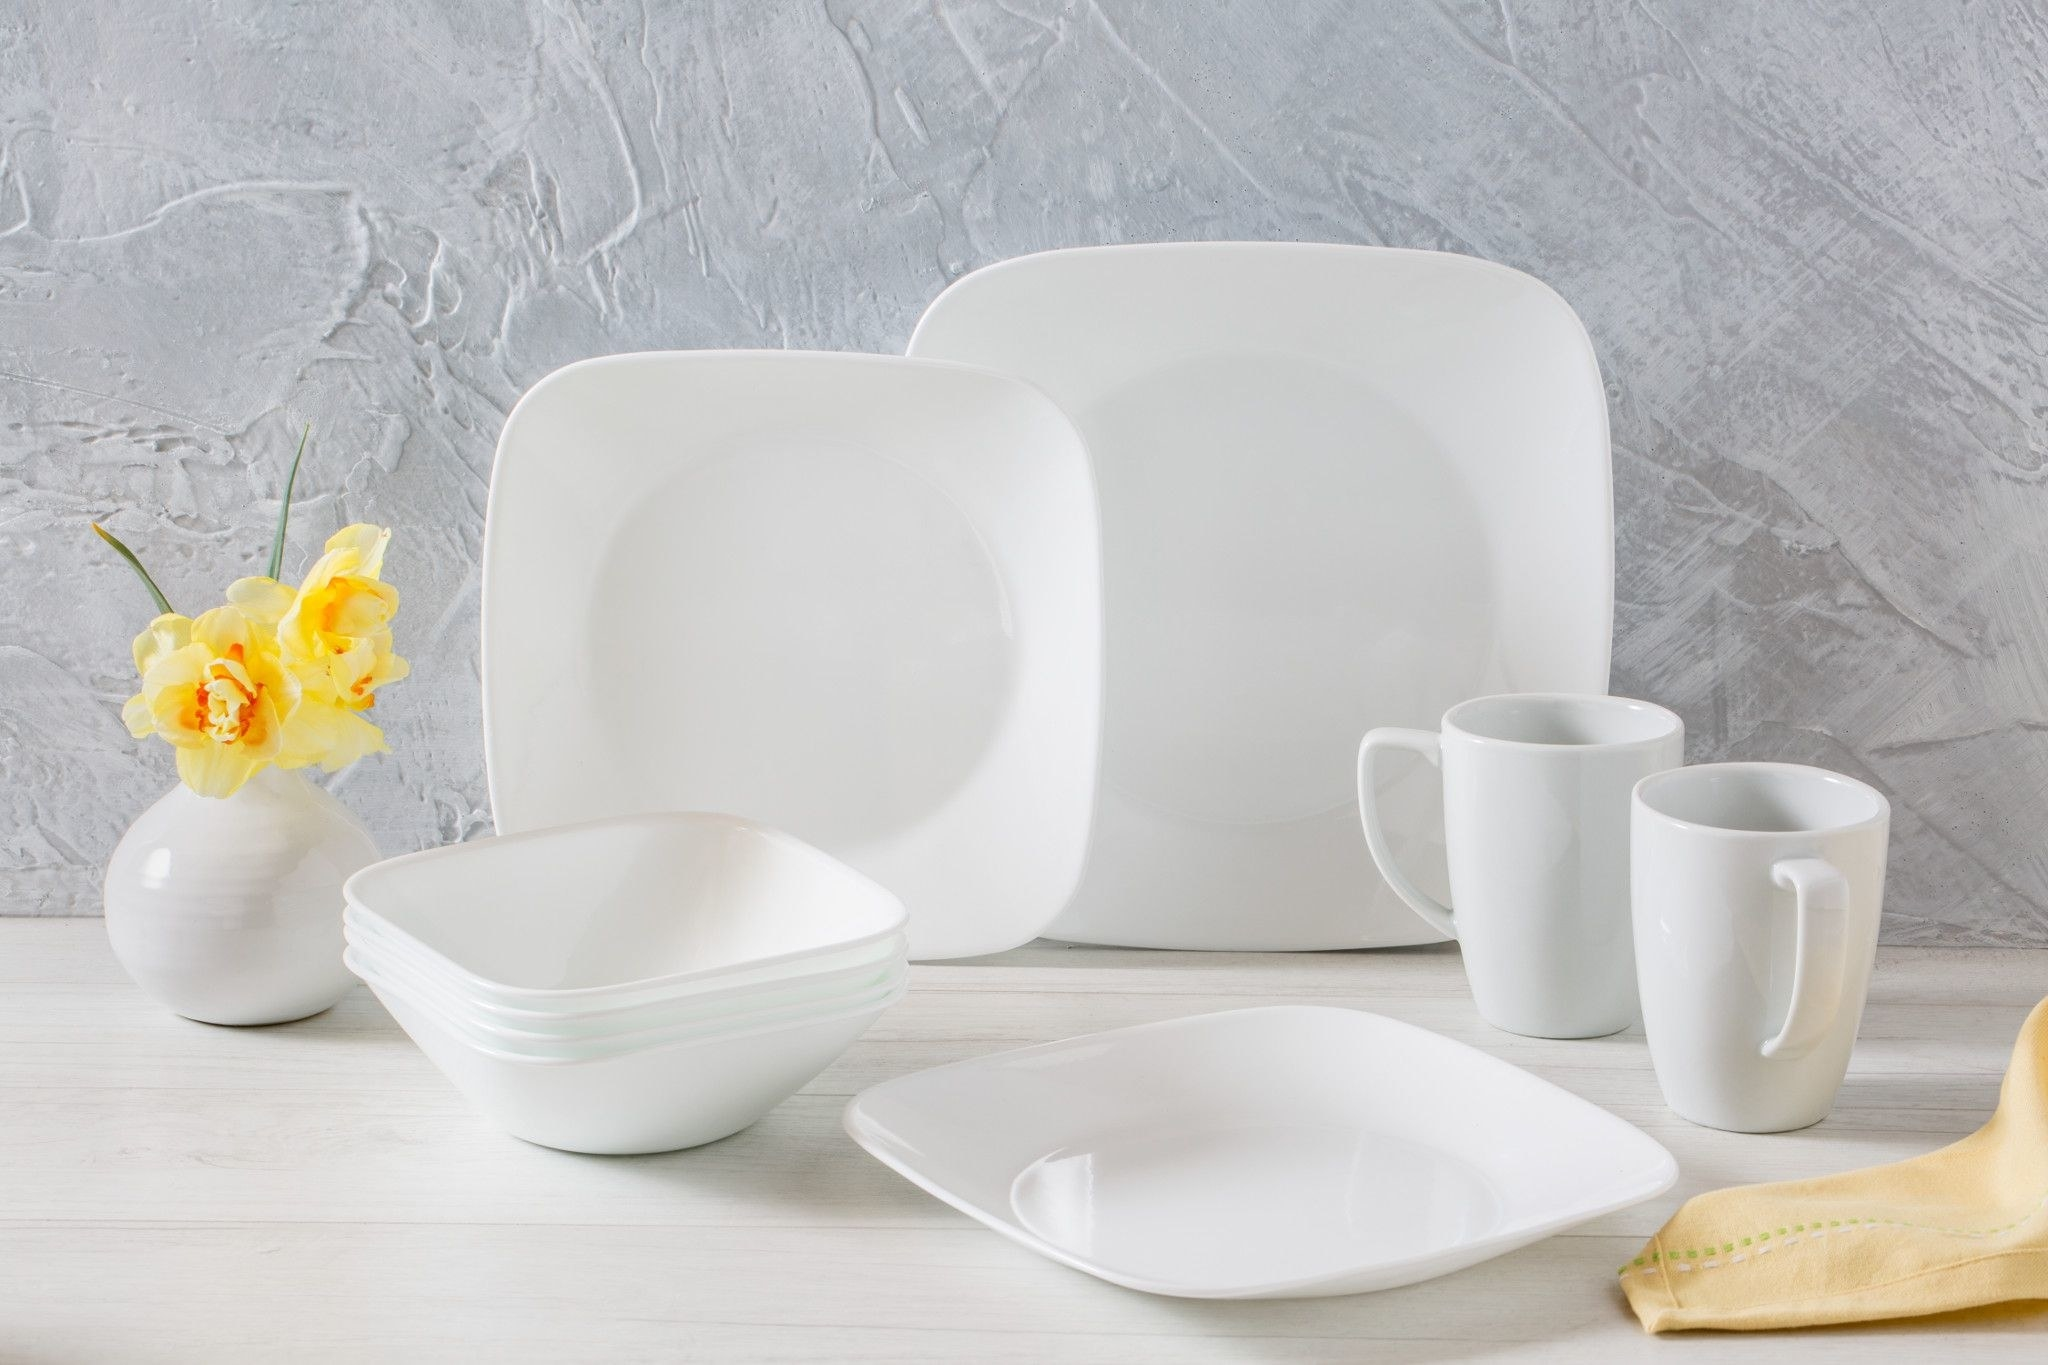 Some of the dinnerware from the set, including two mugs, square plates and square bowls, all in white